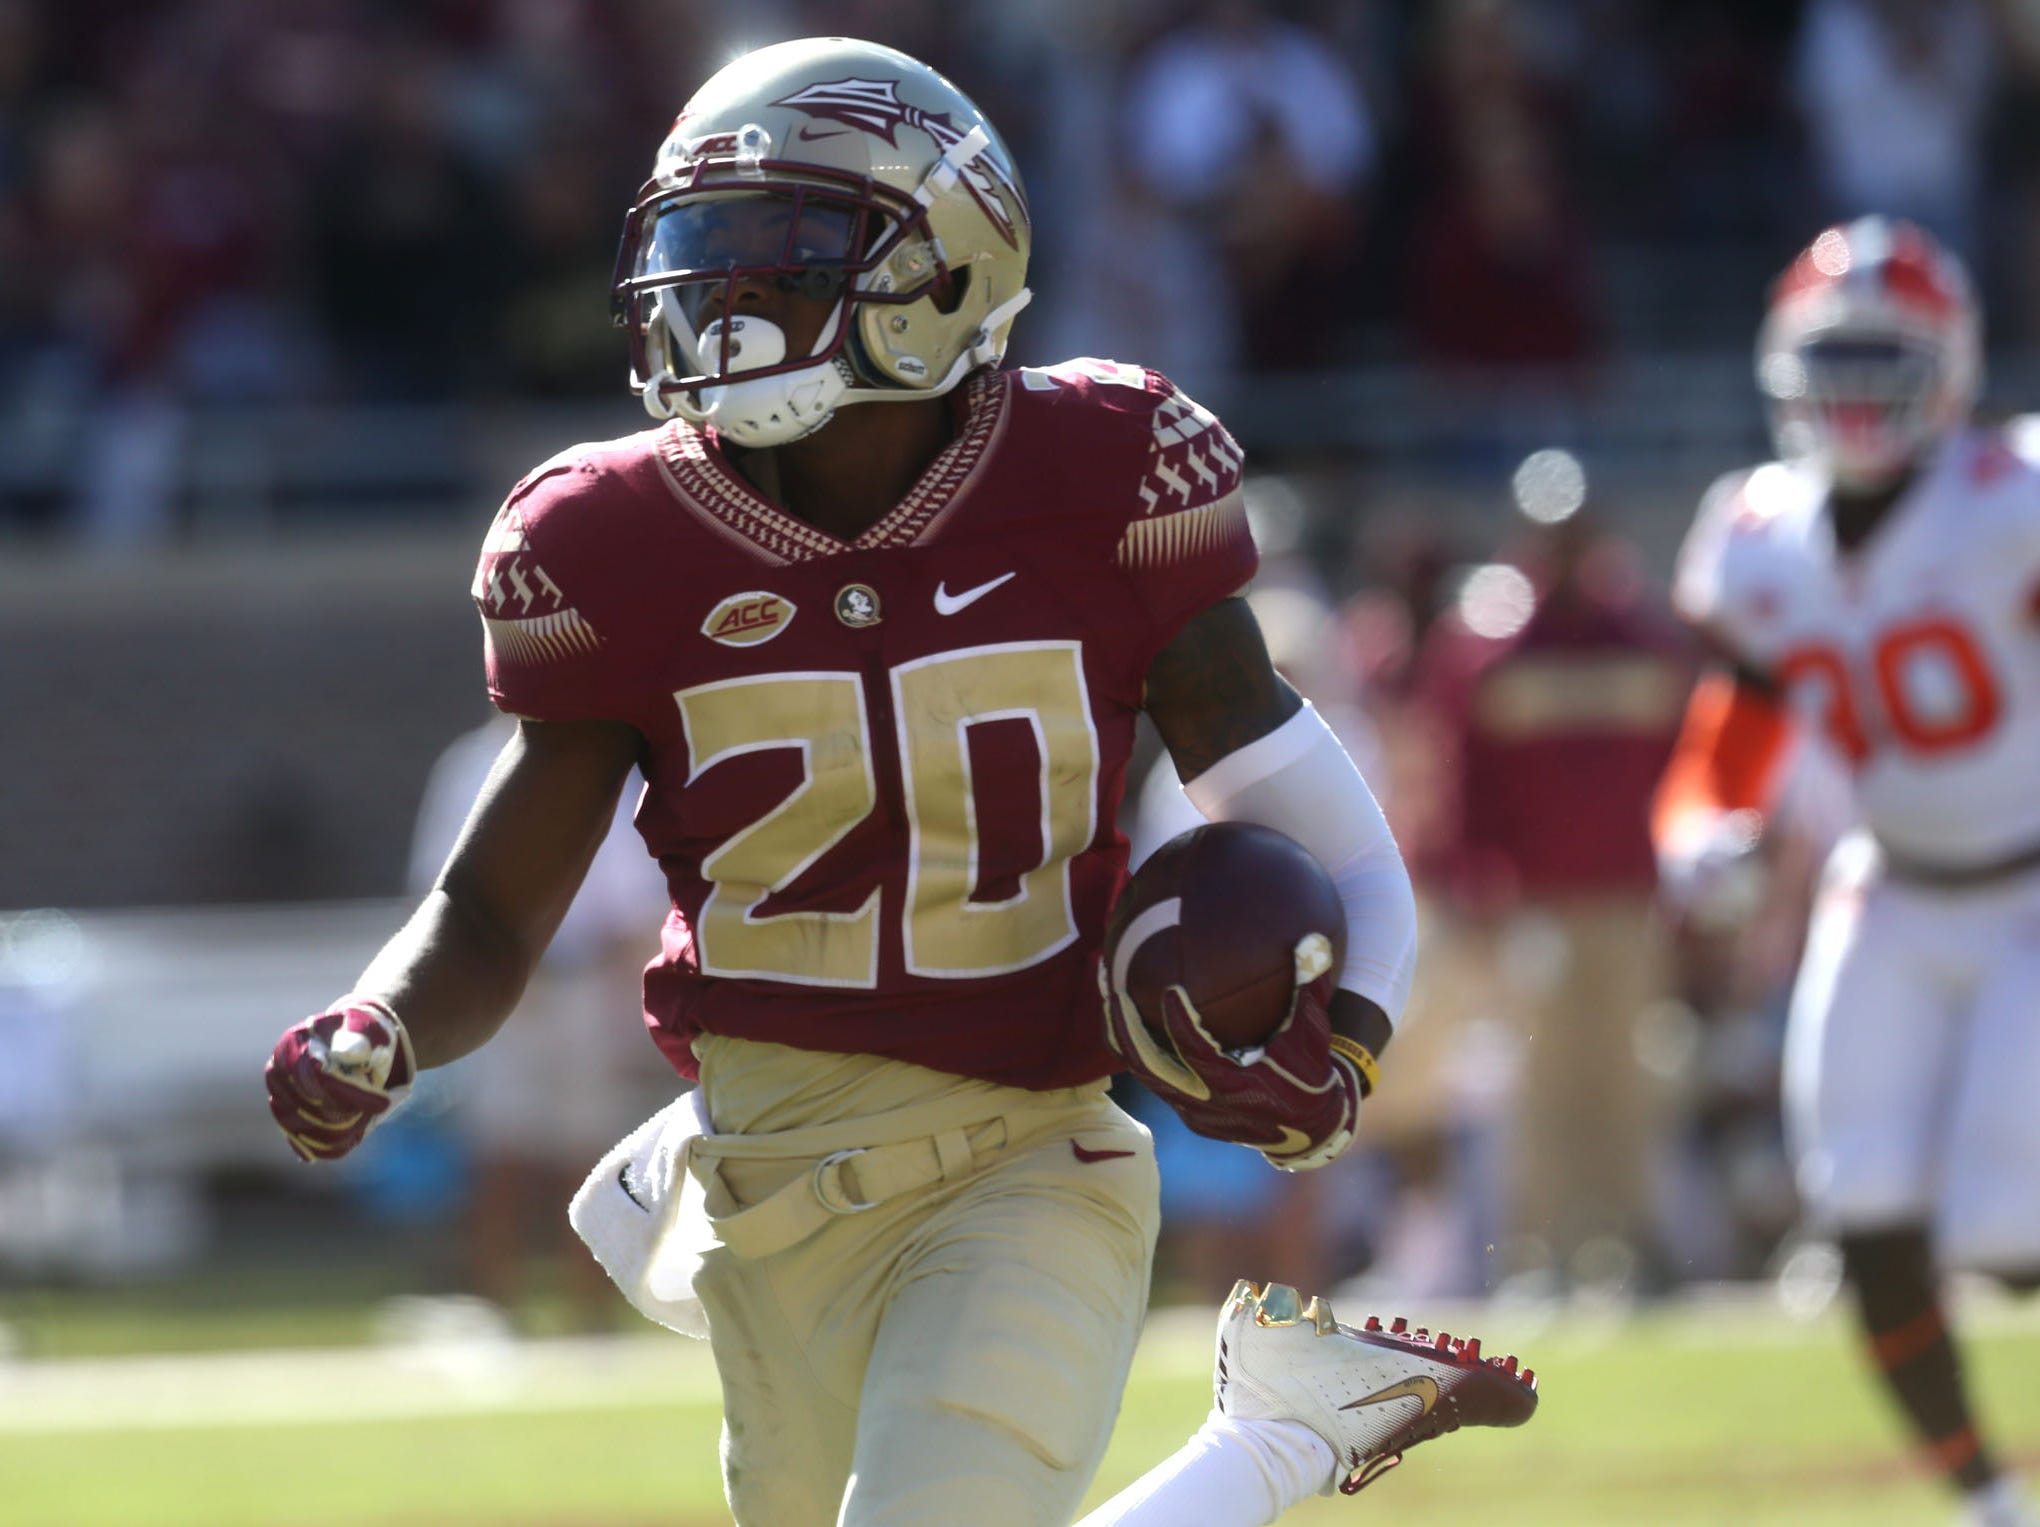 Florida State Seminoles wide receiver Keyshawn Helton (20) runs in for a touchdown as the Florida State Seminoles take on the Clemson Tigers in college football at Doak S. Campbell Stadium on Saturday, Oct. 27, 2018.